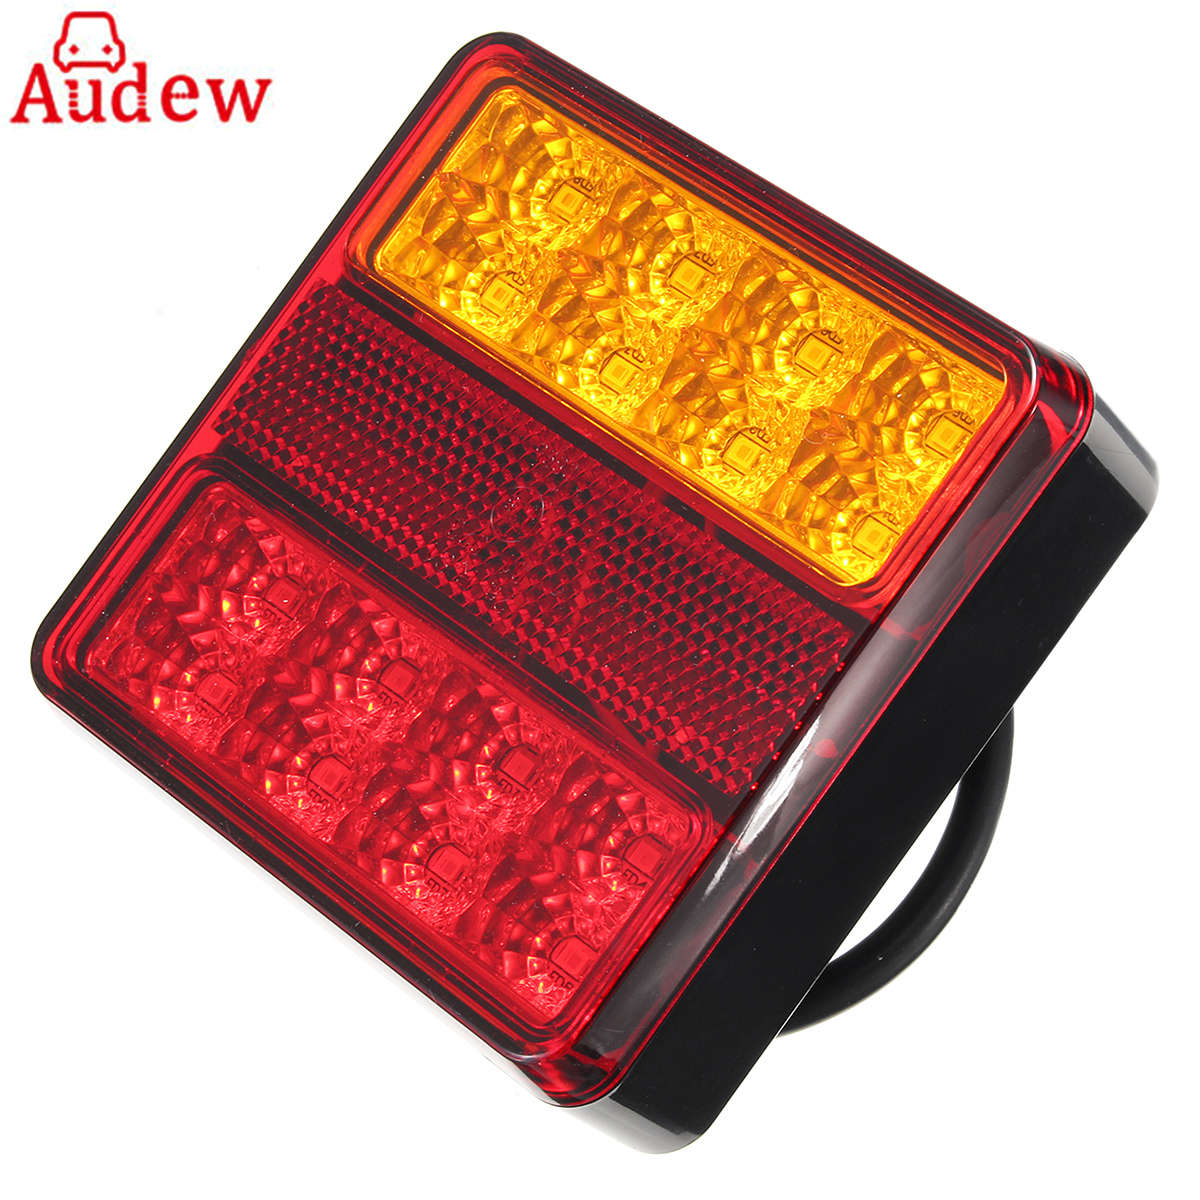 22LEDS Car Truck Rear Tail Light Warning Lights Rear Lamps Waterproof Tail Parts License Plate Lights for Trailer Truck Boat 12V